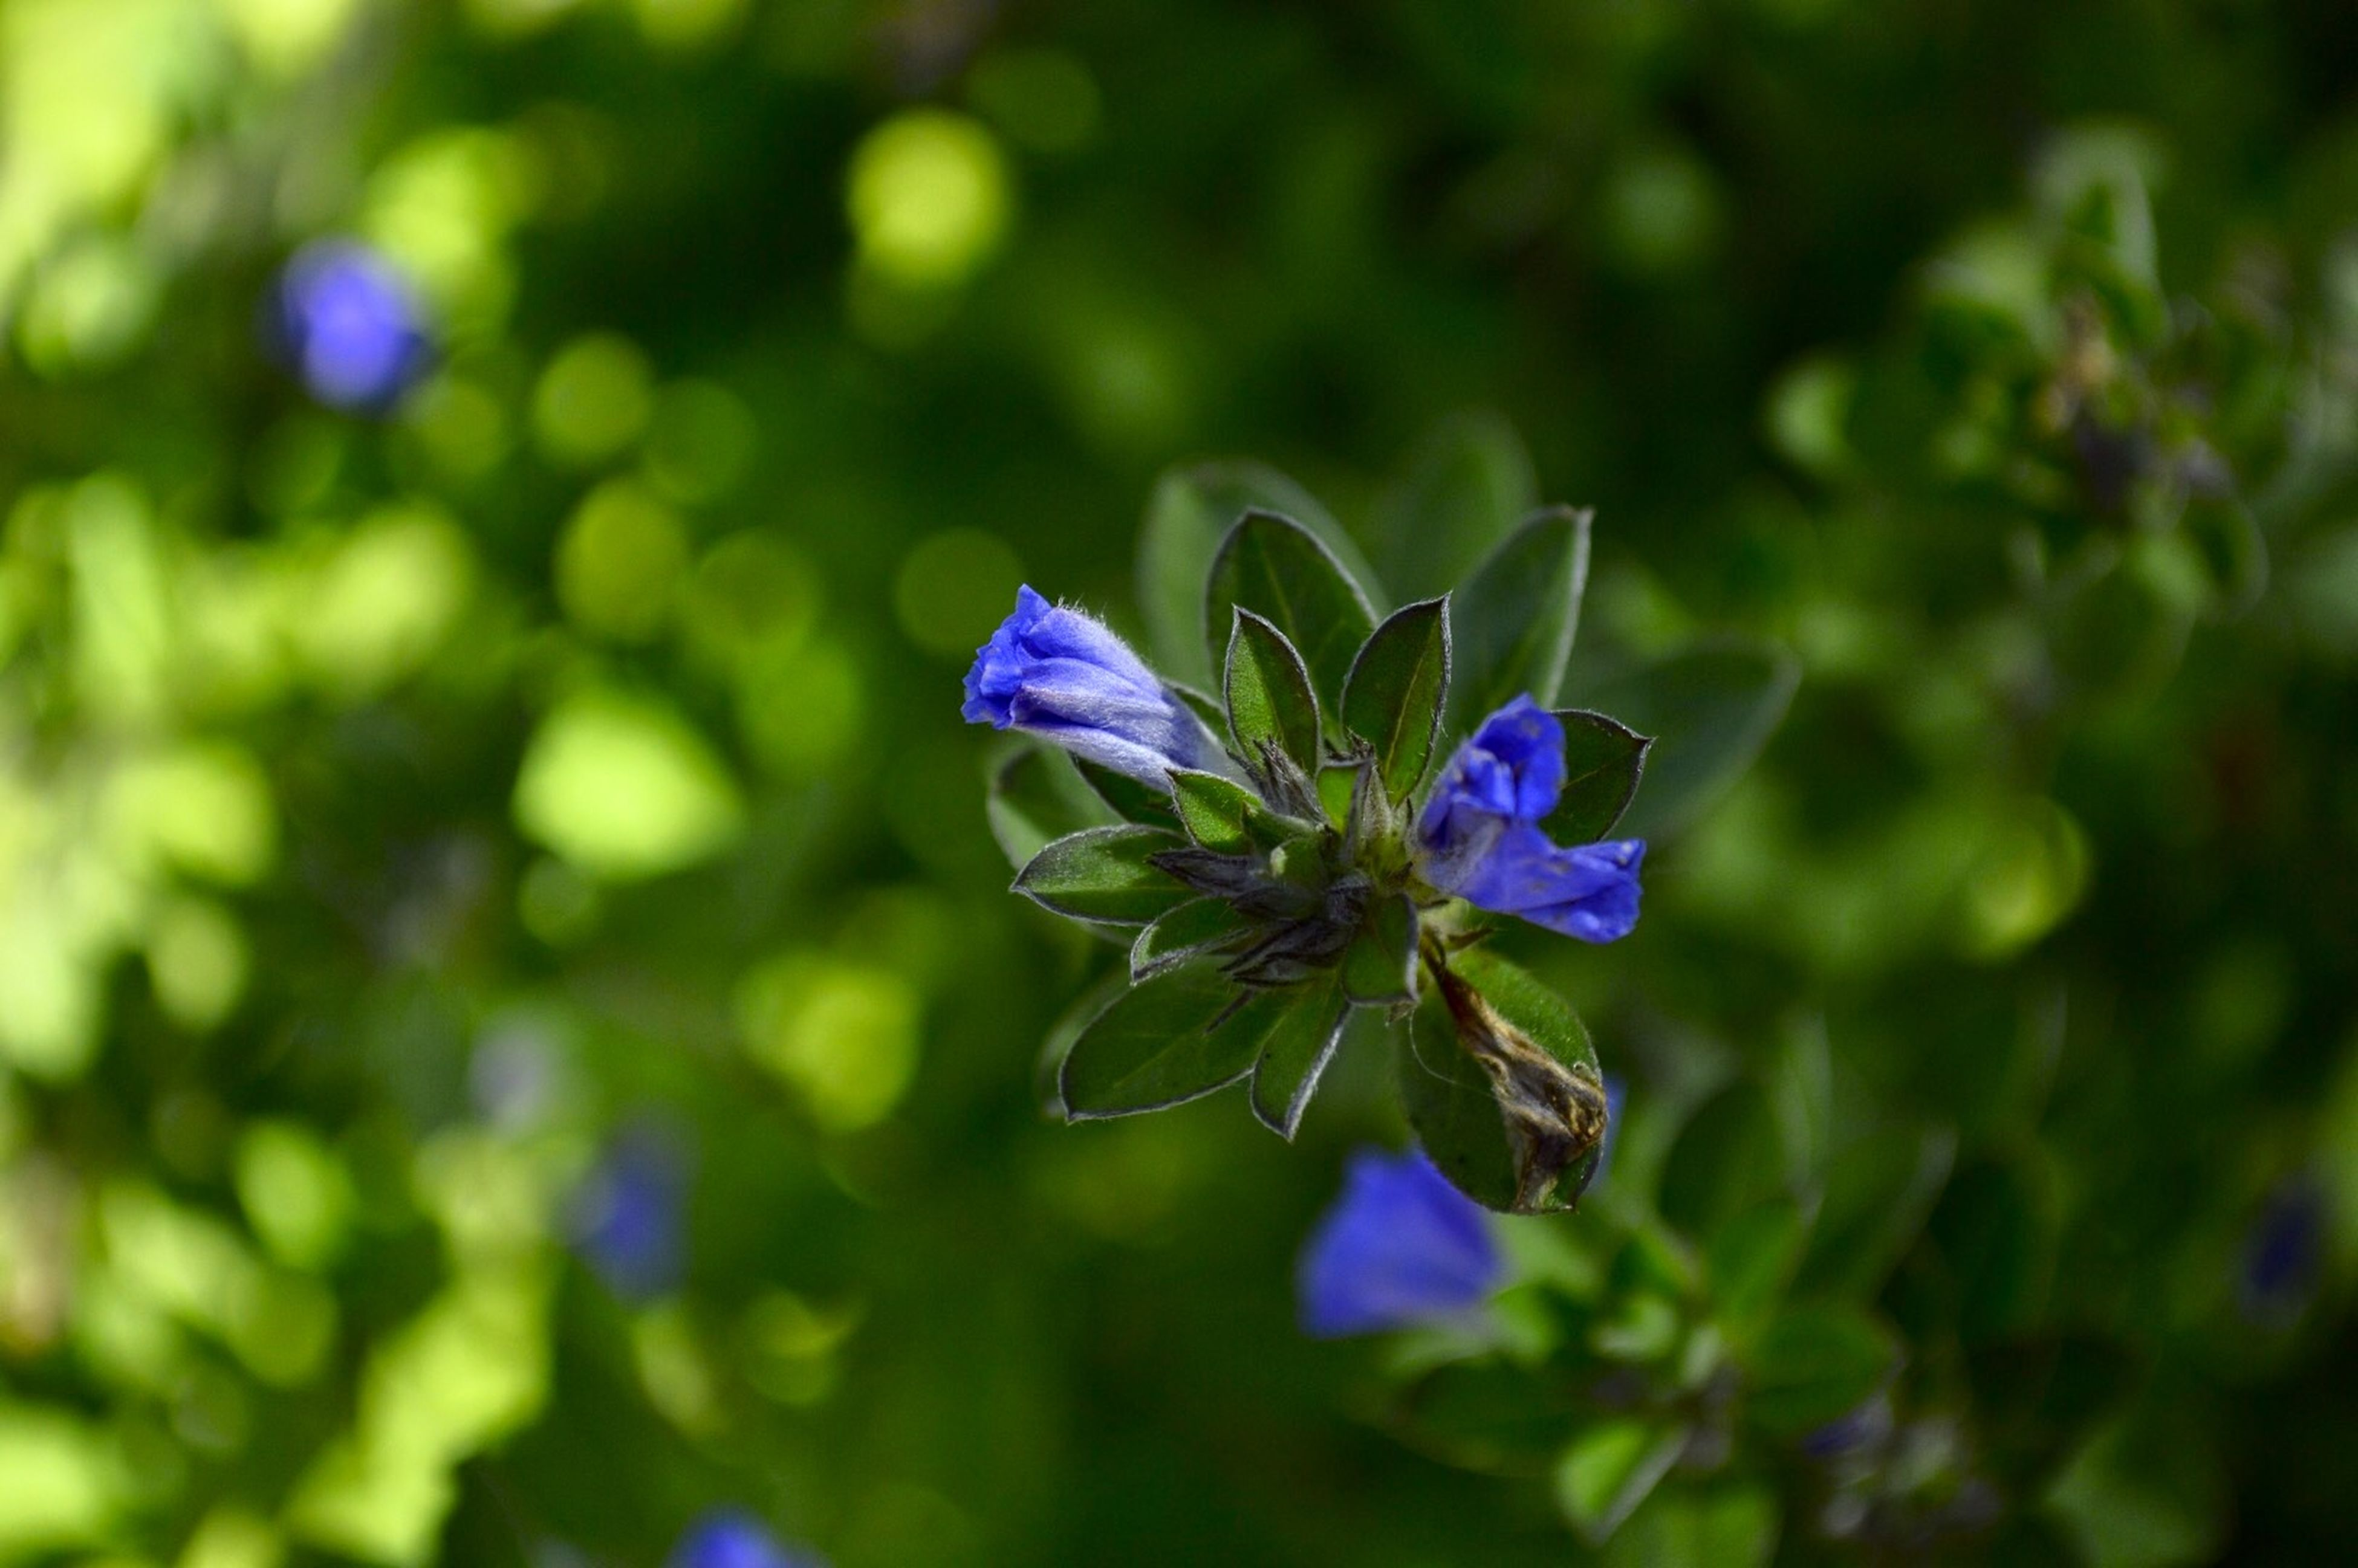 flower, purple, freshness, fragility, petal, growth, focus on foreground, beauty in nature, flower head, blue, close-up, blooming, nature, plant, selective focus, stem, in bloom, outdoors, blossom, day